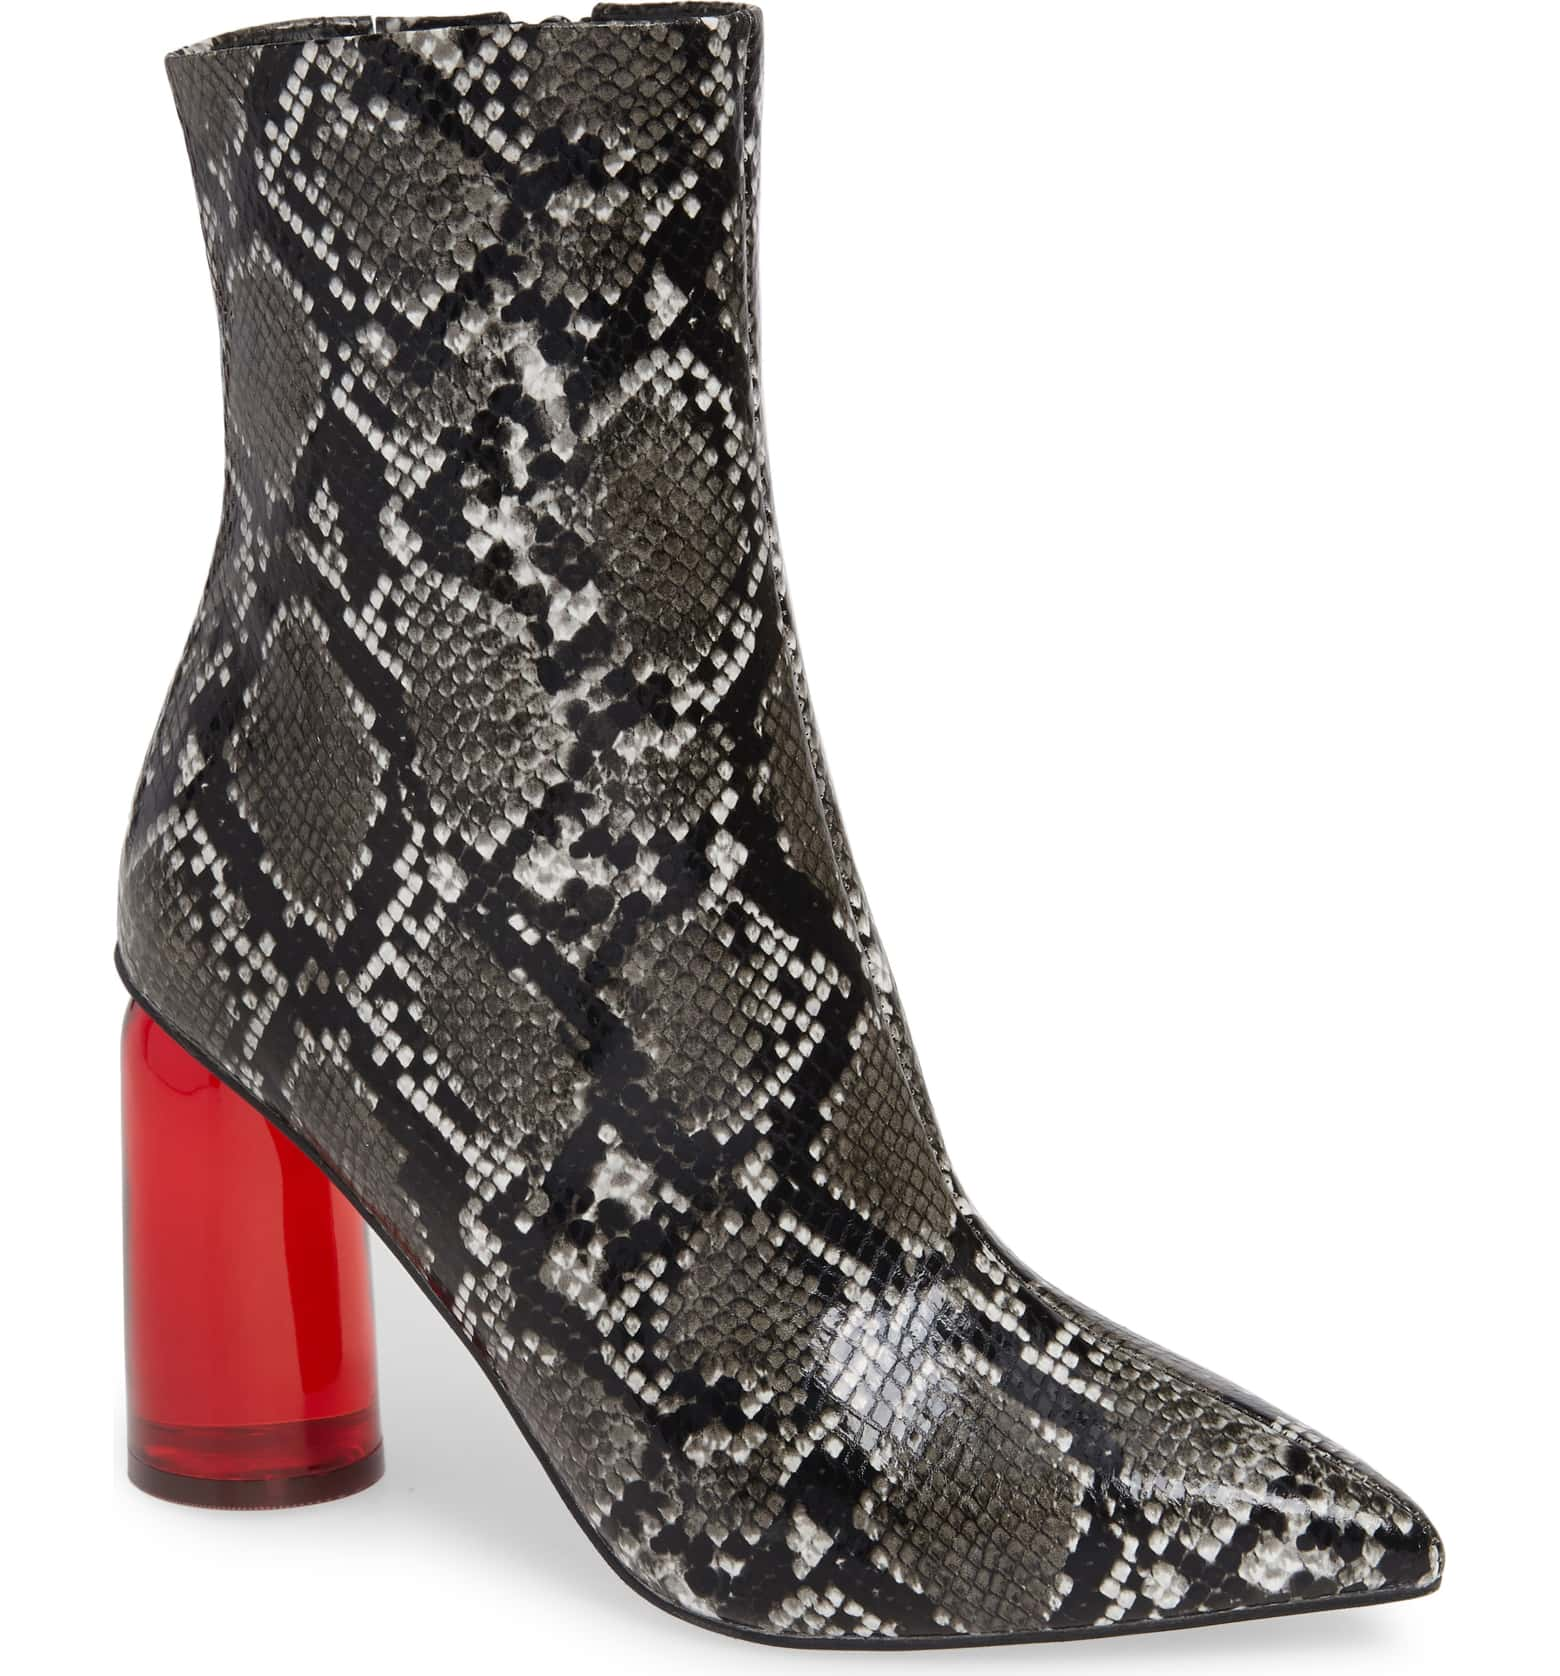 https://shop.nordstrom.com/s/jeffrey-campbell-lustful-bootie-women/5014322?origin=keywordsearch-personalizedsort&breadcrumb=Home%2FAll%20Results&color=black%20grey%20snake%2F%20red%20combo